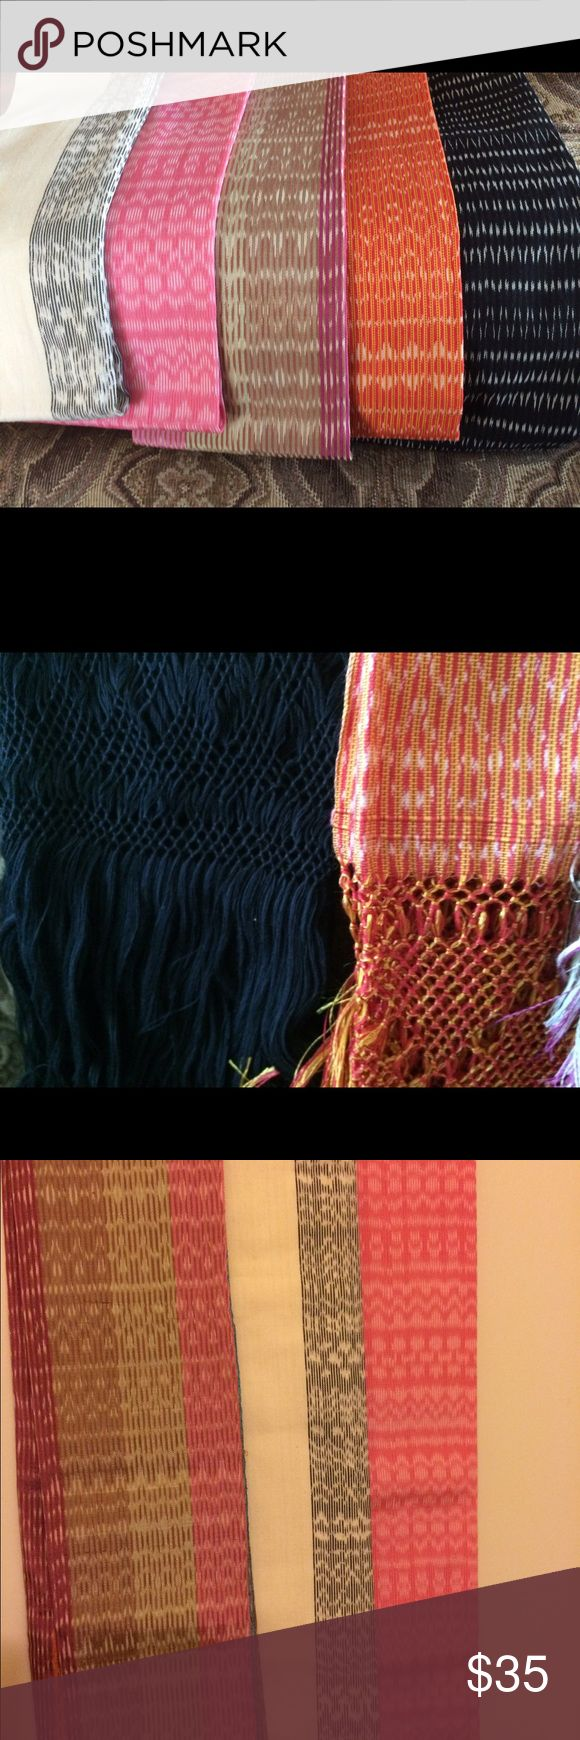 Handmade Mexican Rebozos (shawl) Various colors. See individual posts for details Accessories Scarves & Wraps